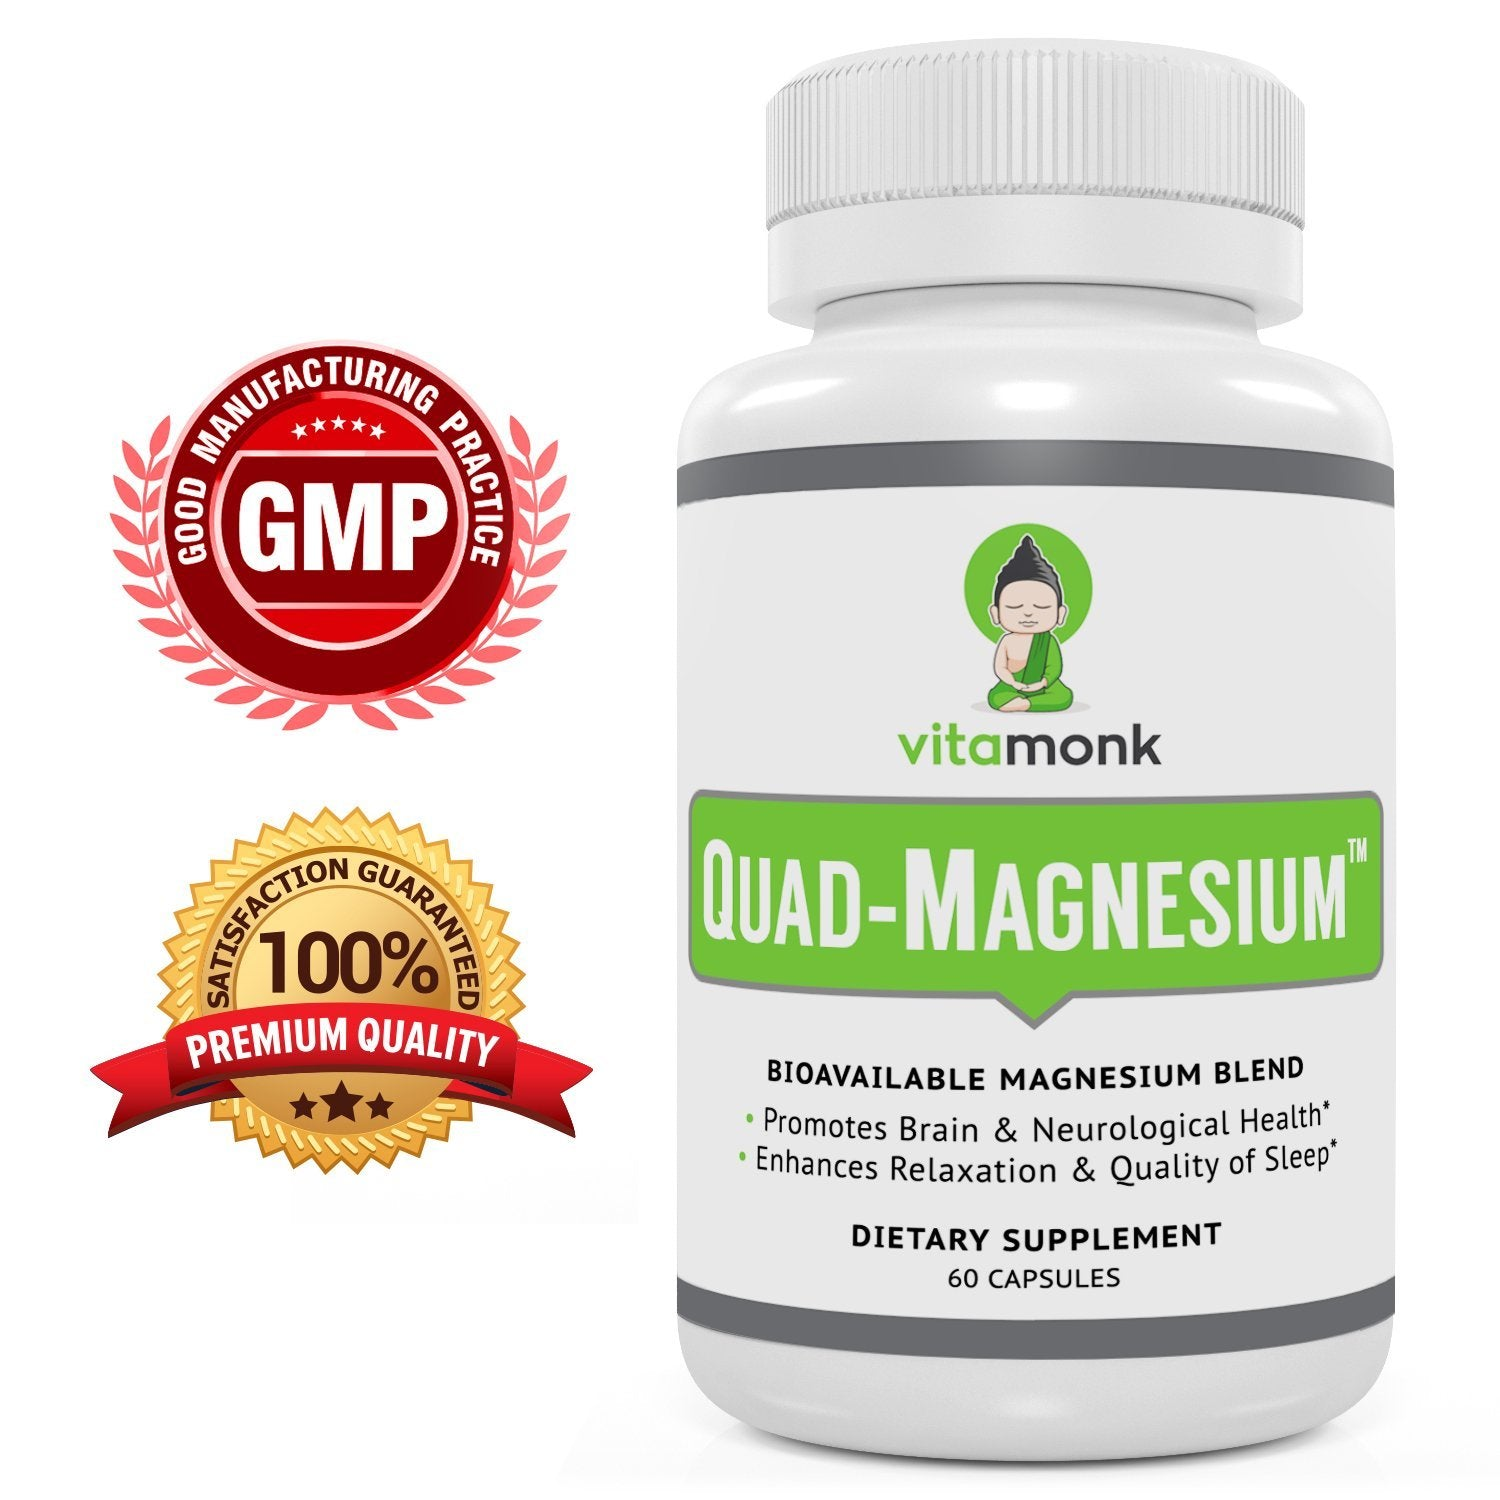 Quad-magnesium™ - All-in-one Magnesium Supplement For Sleep, Energy, Mood, And Health